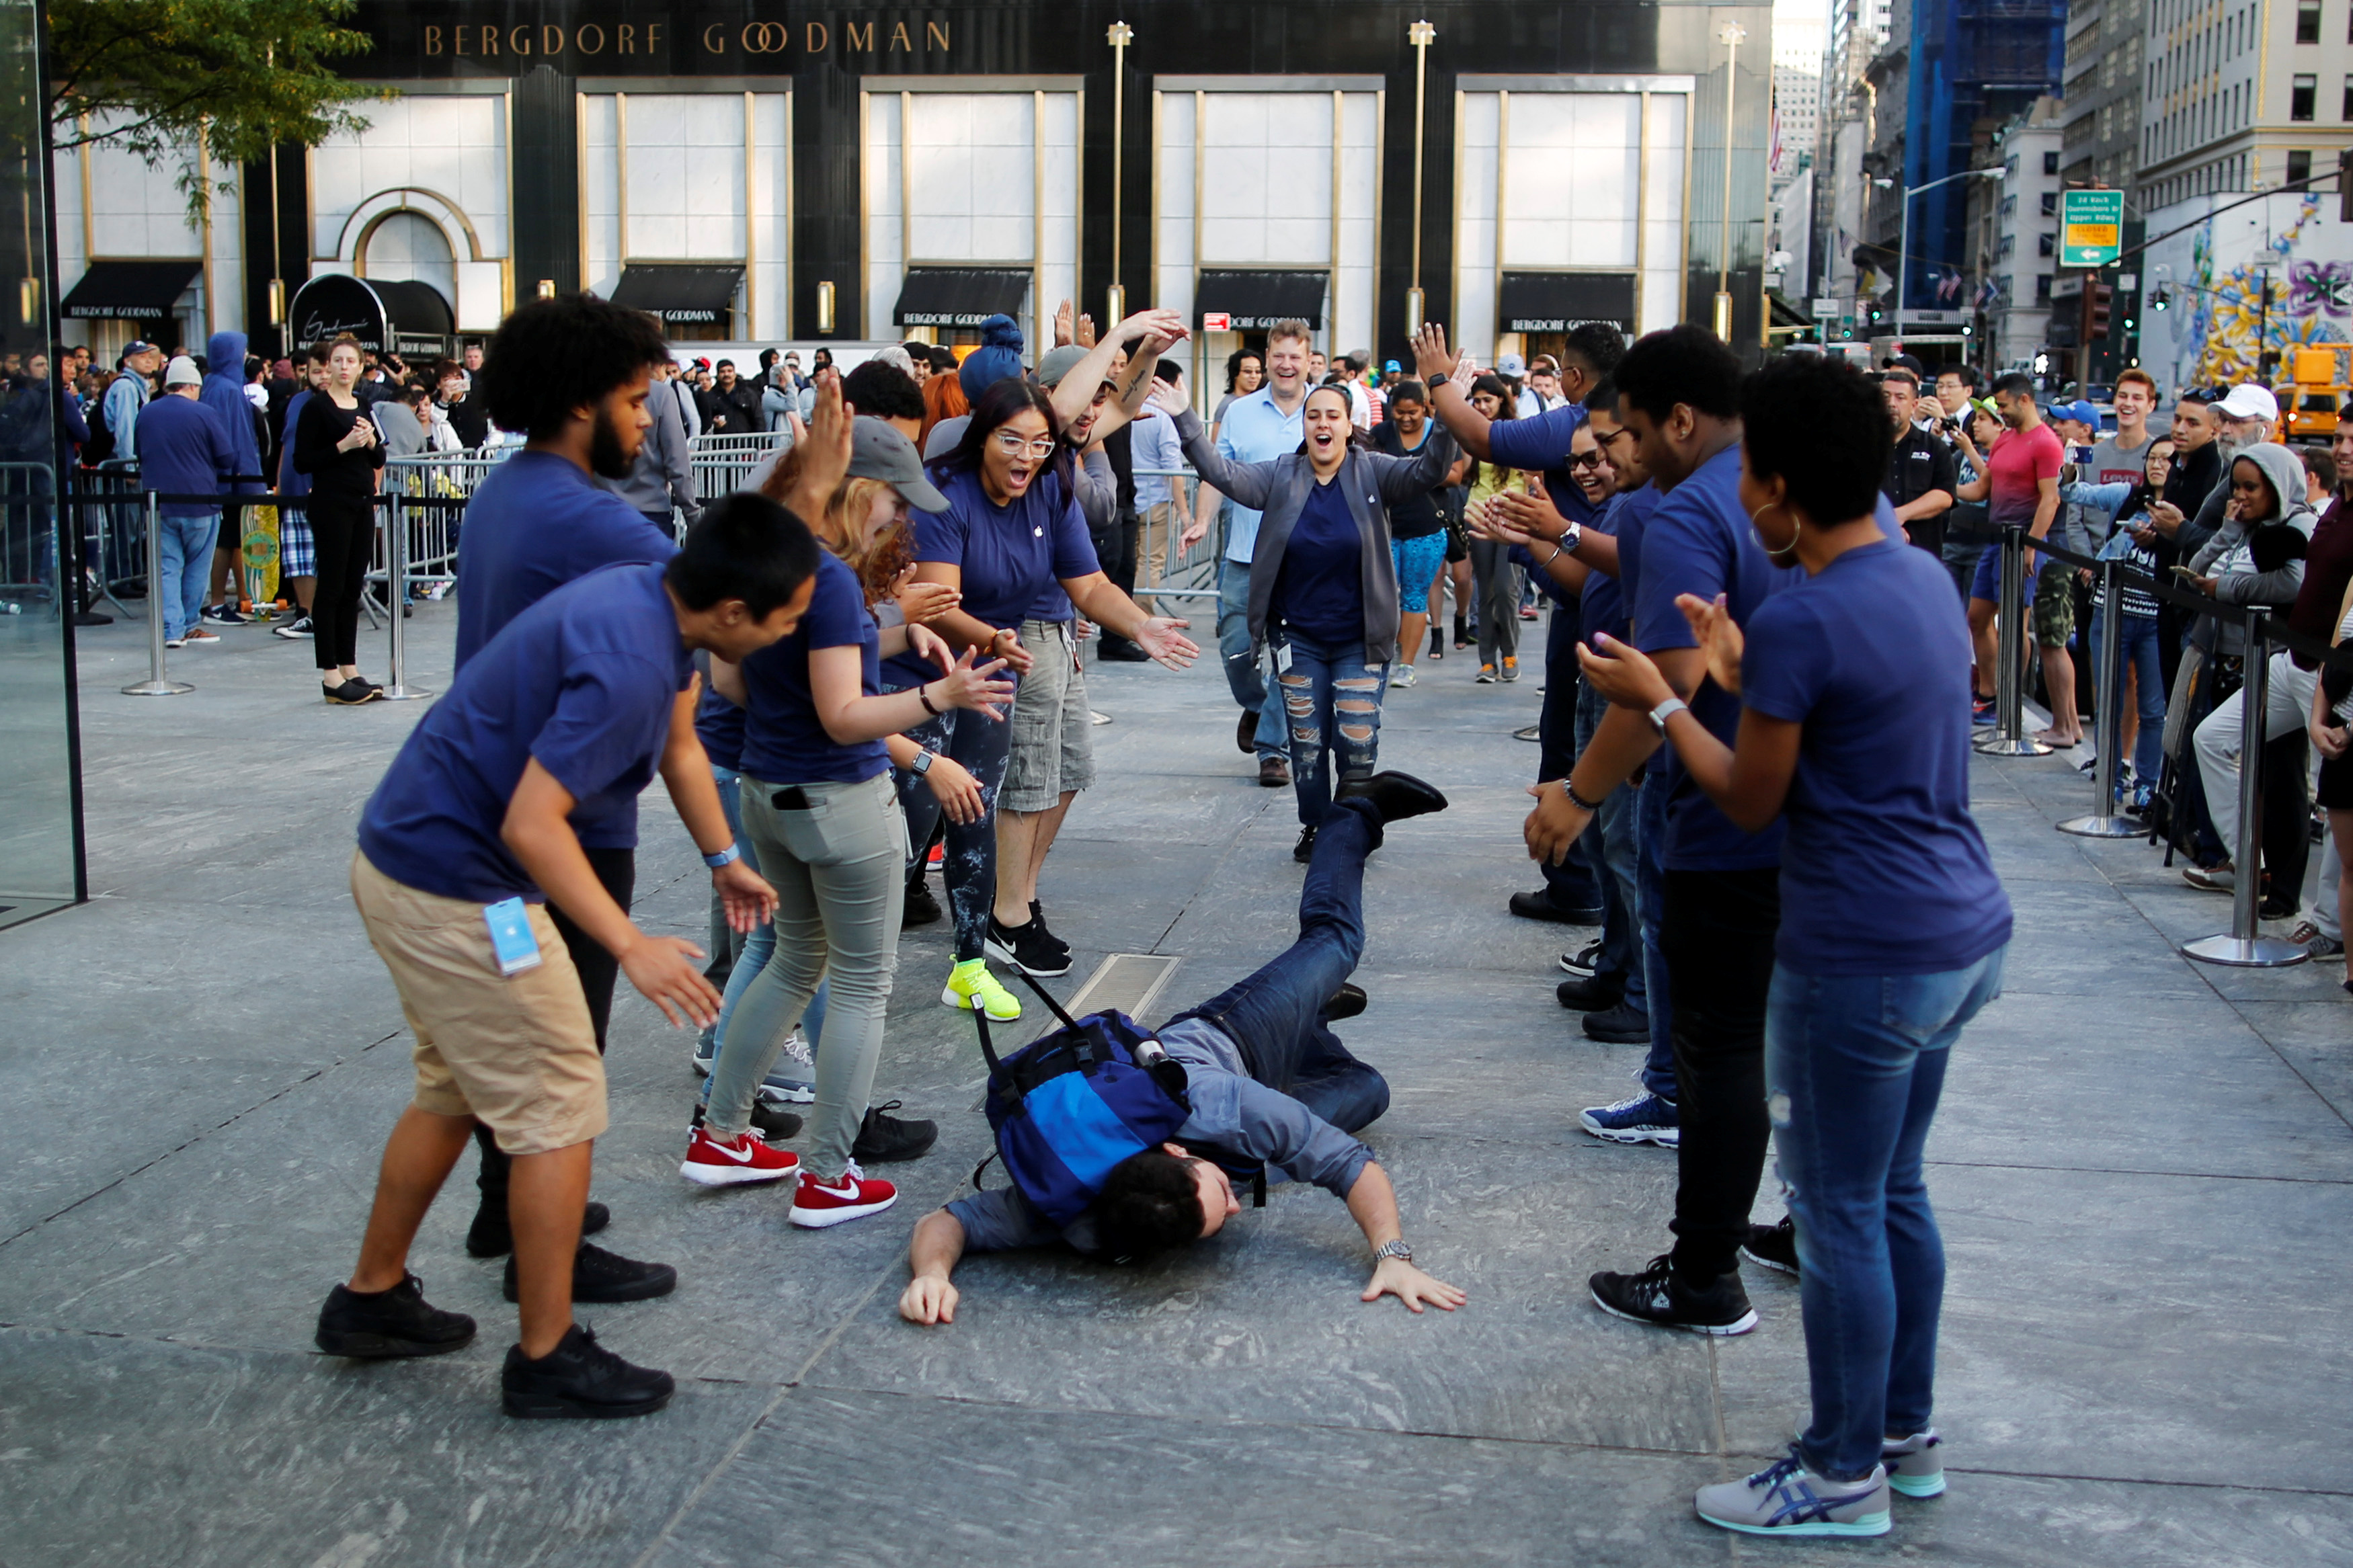 A customer falls down before going into the Apple Inc. store for buying the iPhone 7 smartphone in New York, U.S.